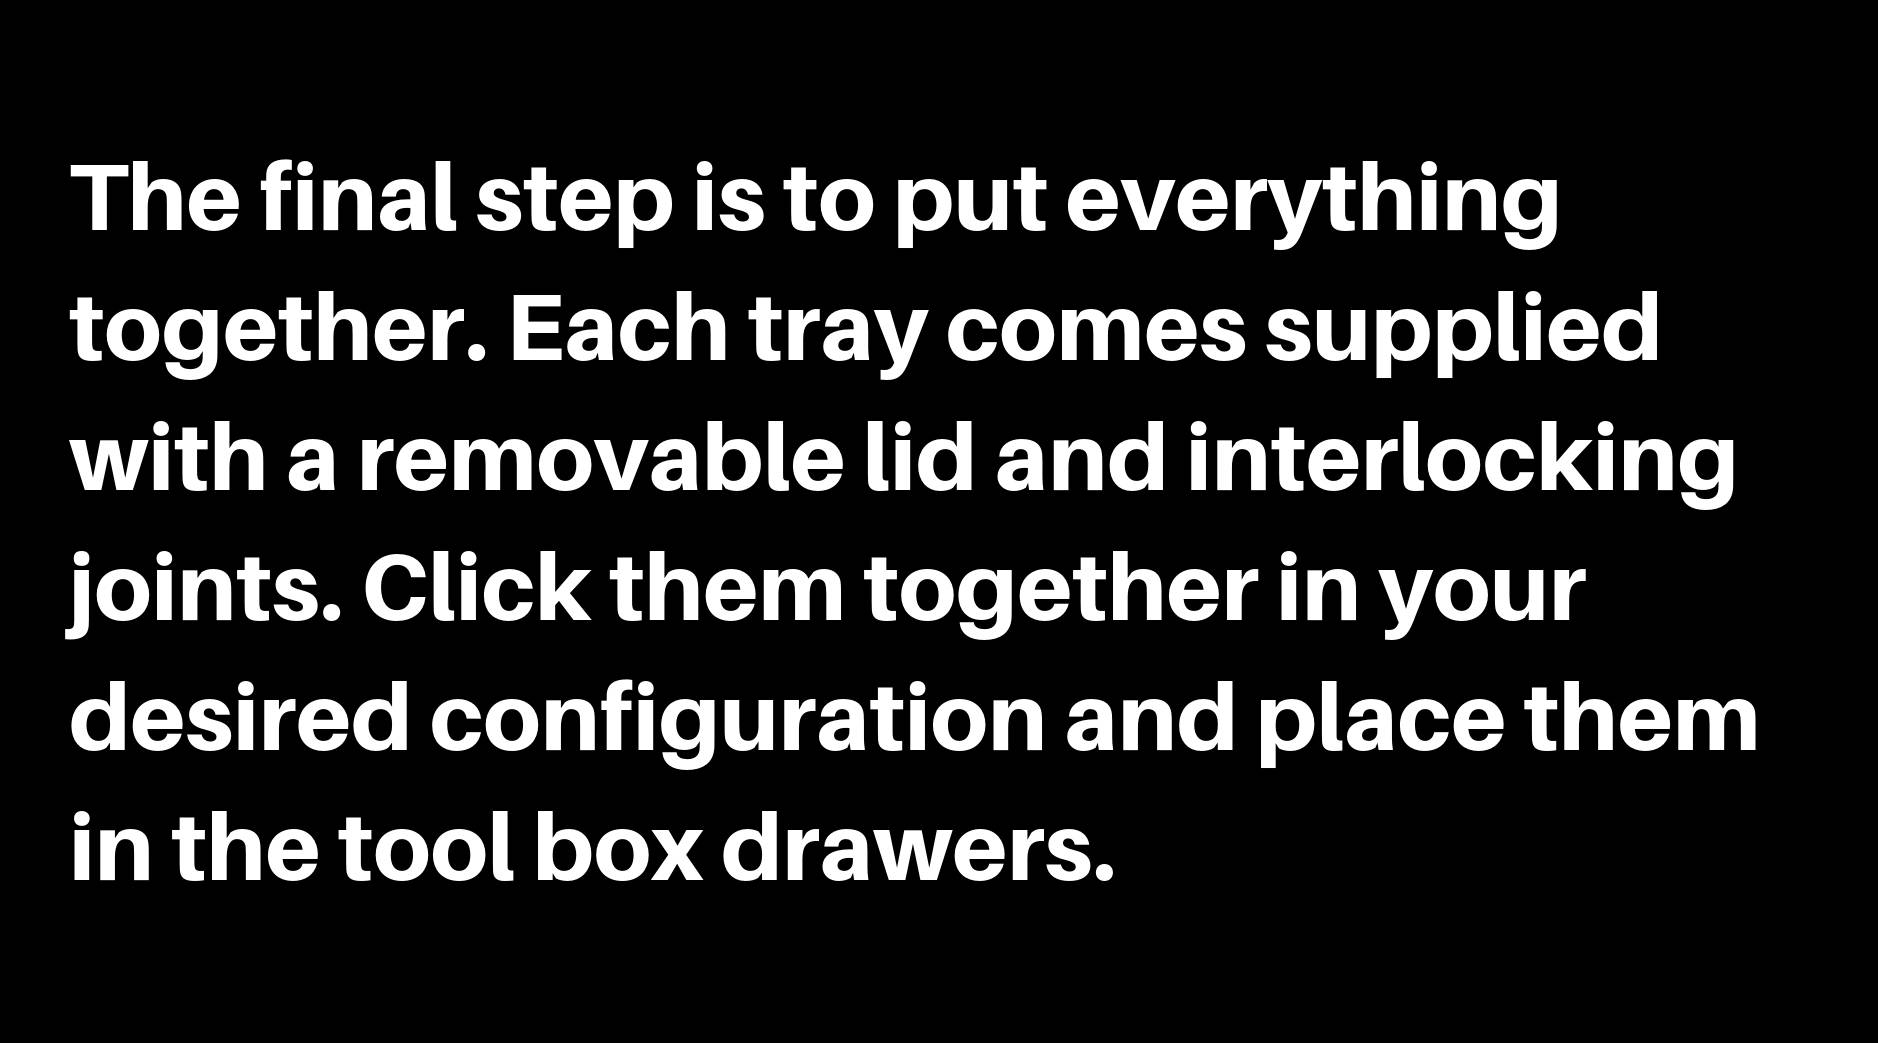 The final step is to put everything together. Each tray comes supplied with a removable lid and interlocking joints. Click them together in your desired configuration and place them in the tool box drawers.